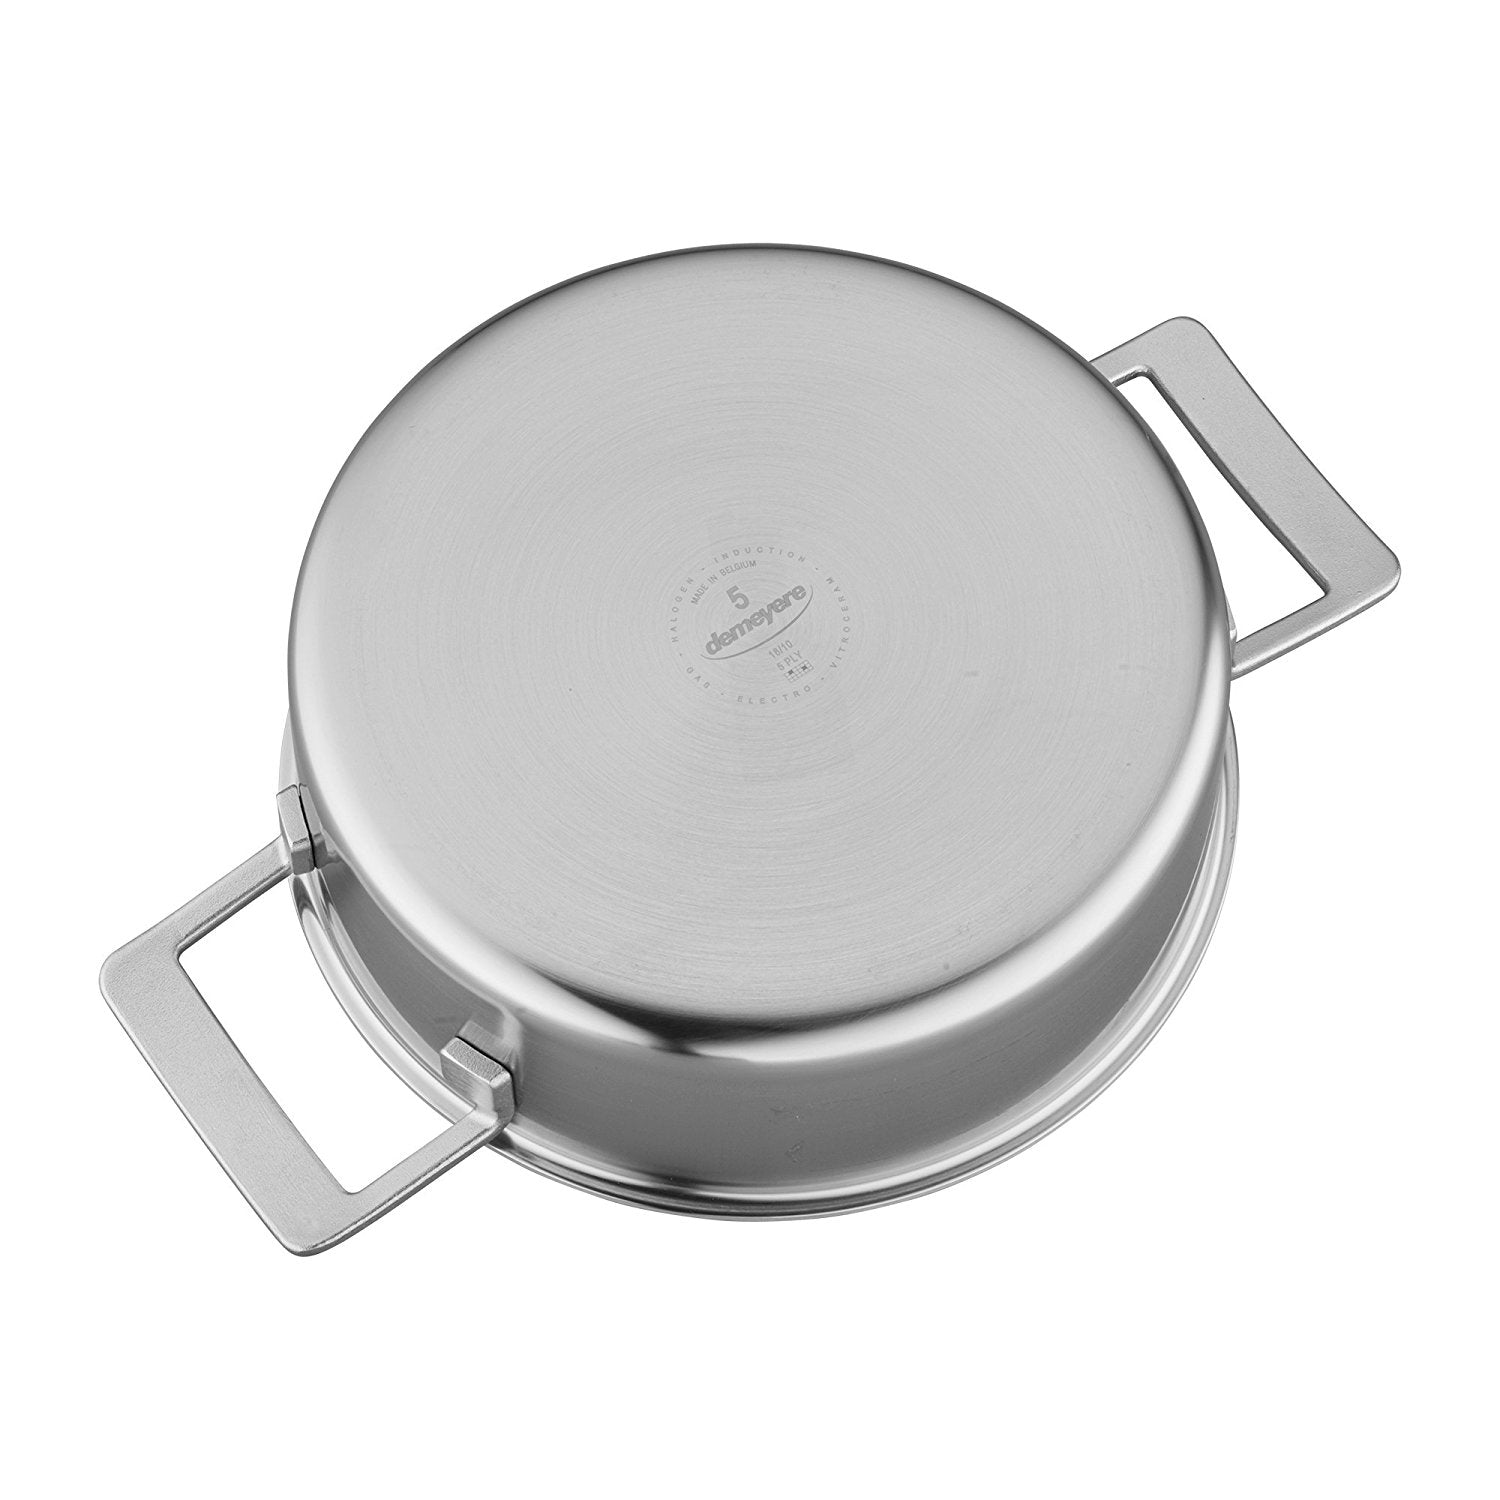 Demeyere Industry 5 Ply 4 Qt Stainless Steel Deep Saute Pan